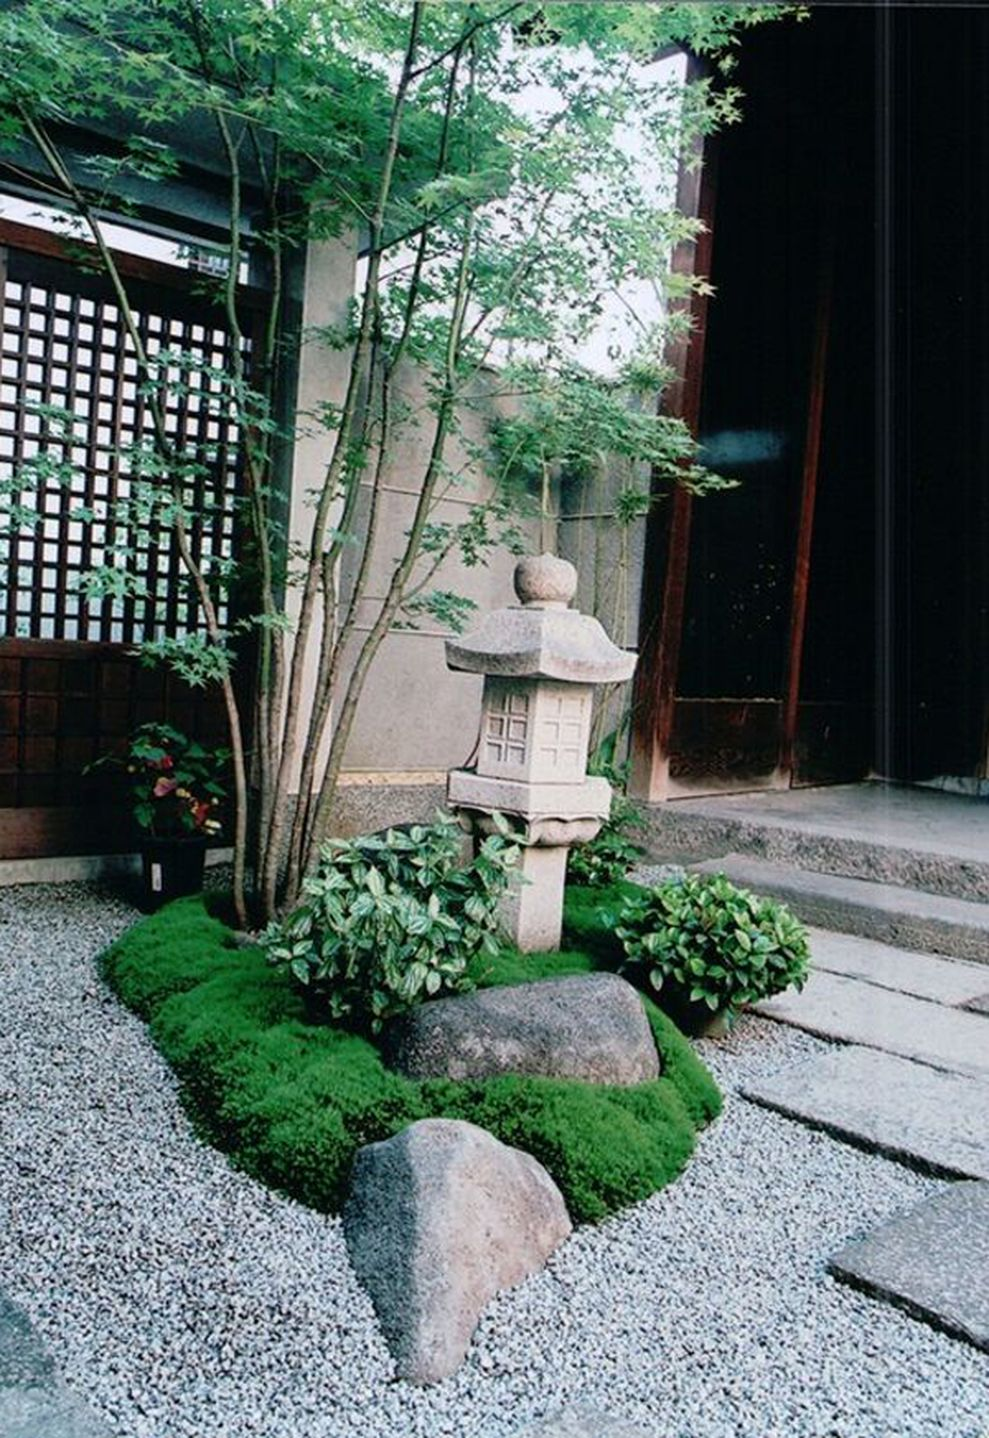 Inspiring small japanese garden design ideas 36 - ROUNDECOR on Small Backyard Japanese Garden Ideas id=99930